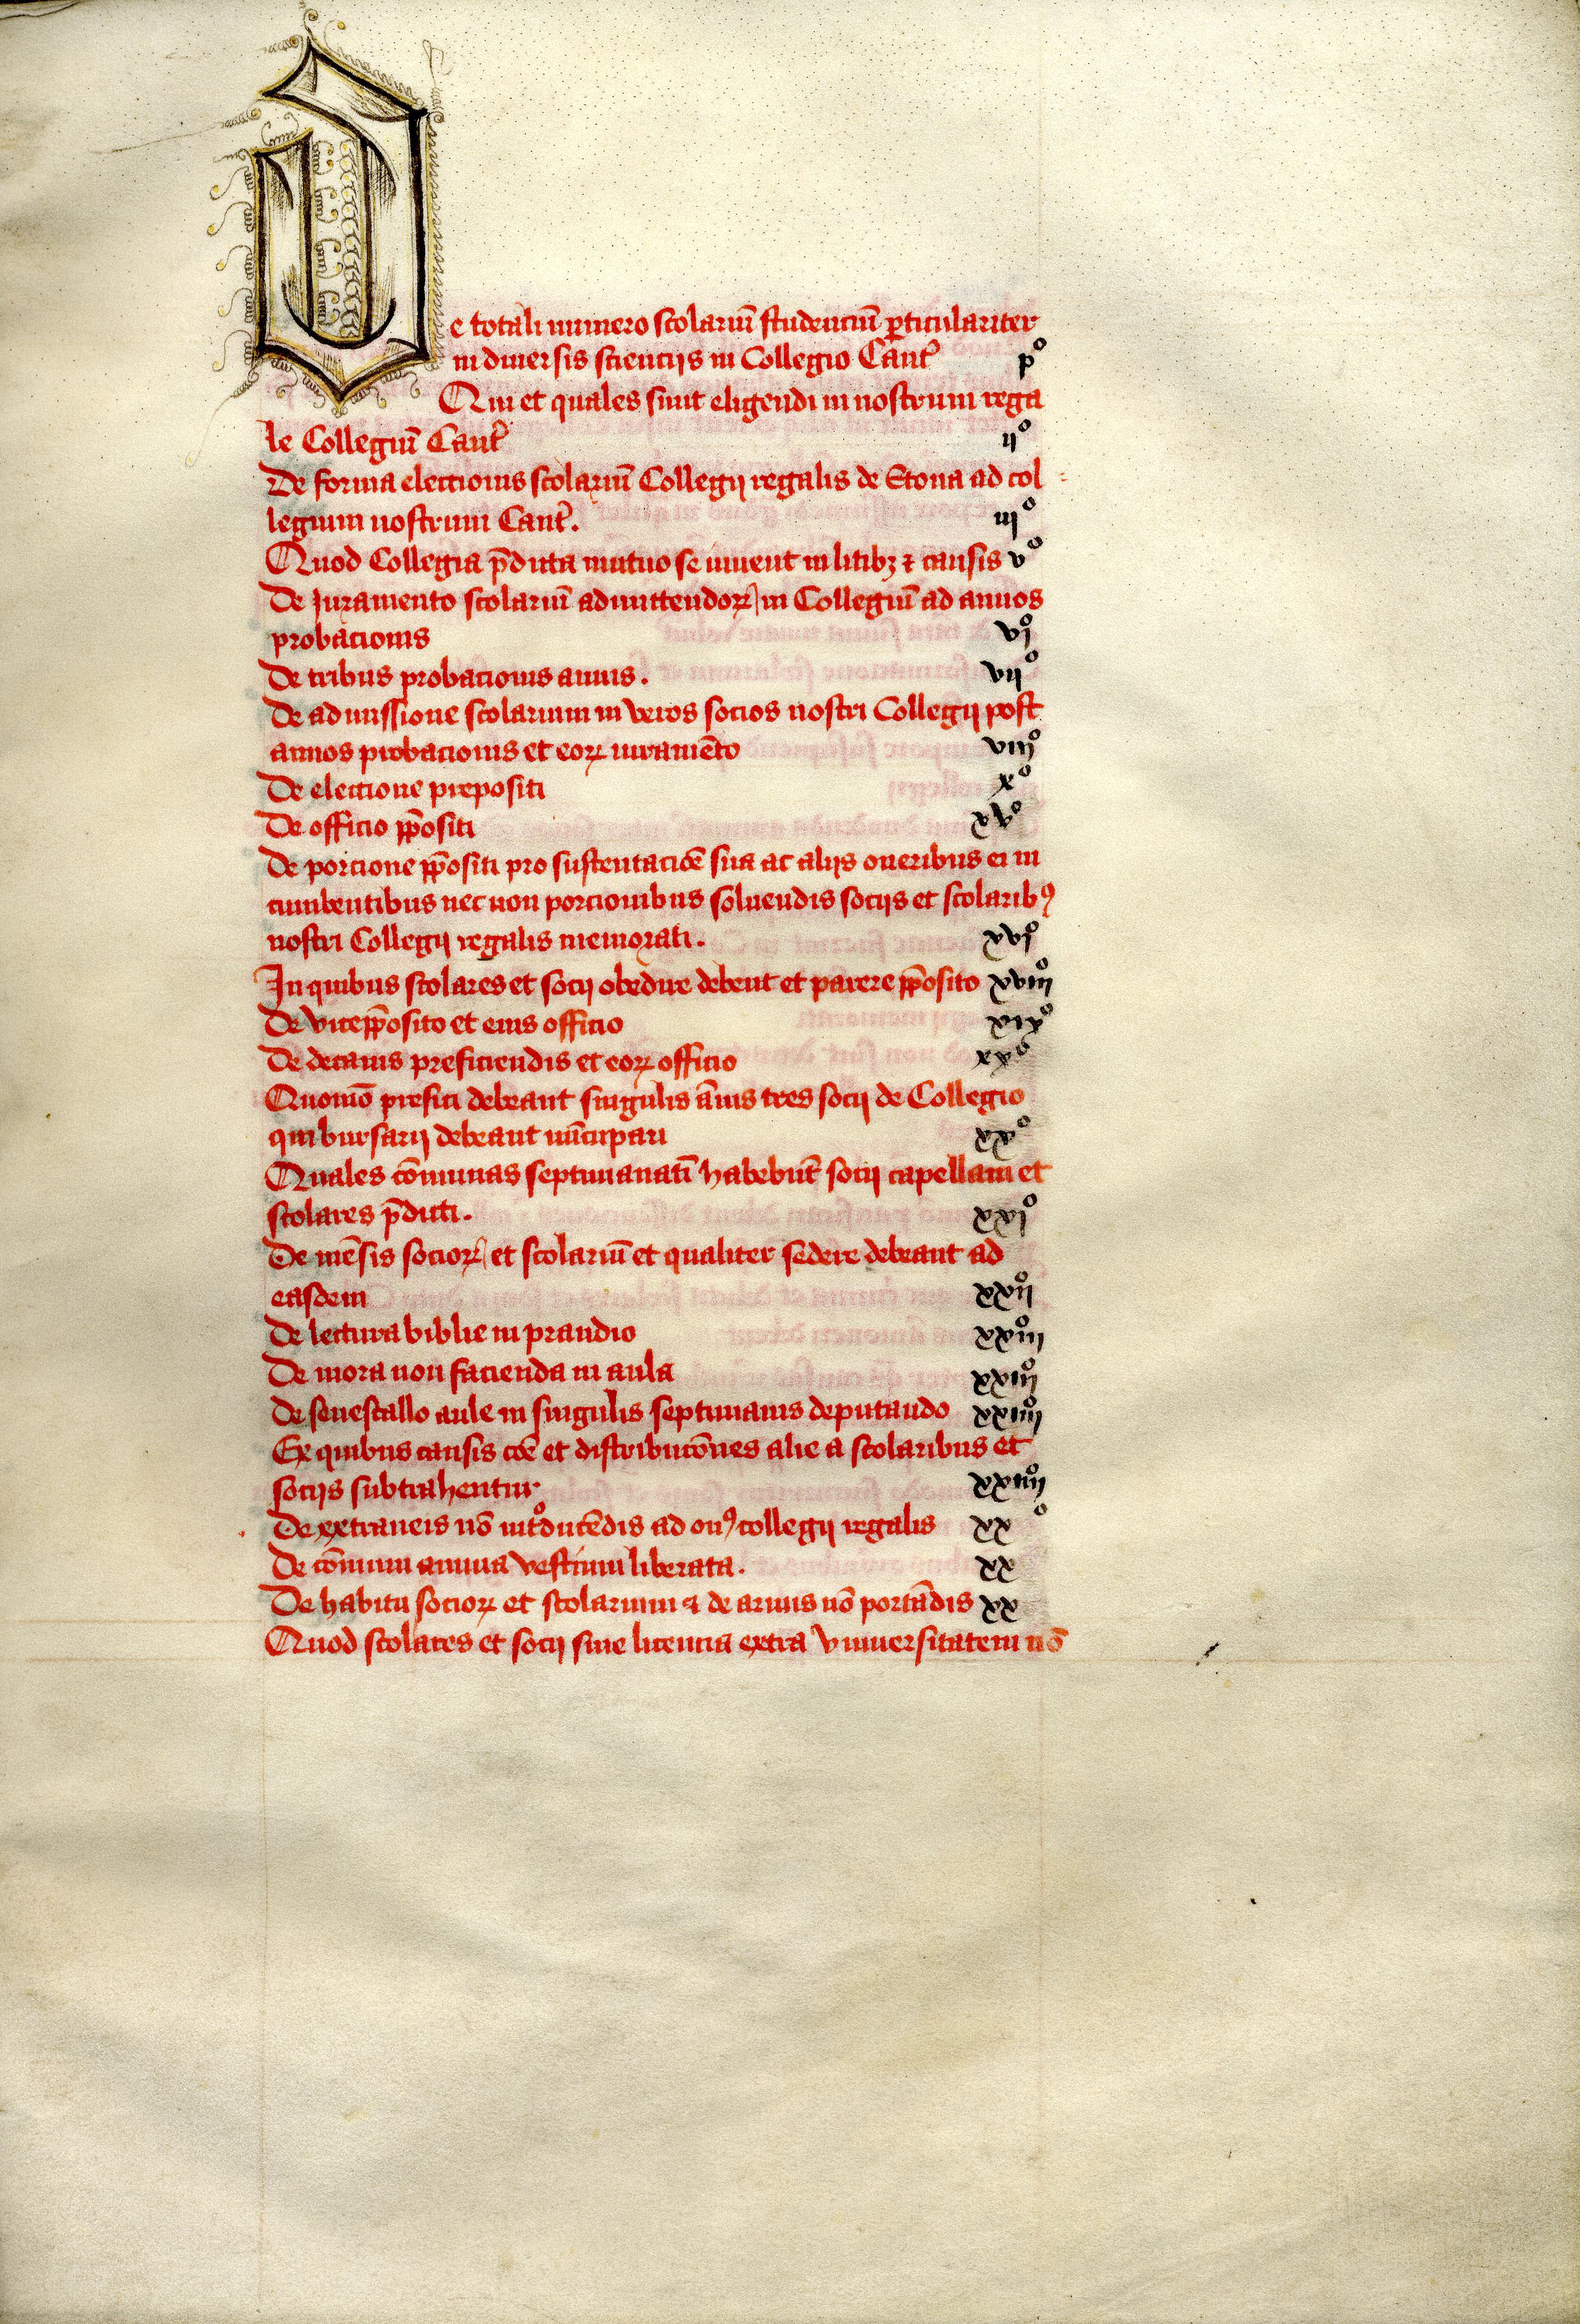 Part of the contents of the Founder's Statutes, 1450 (KCS/9)